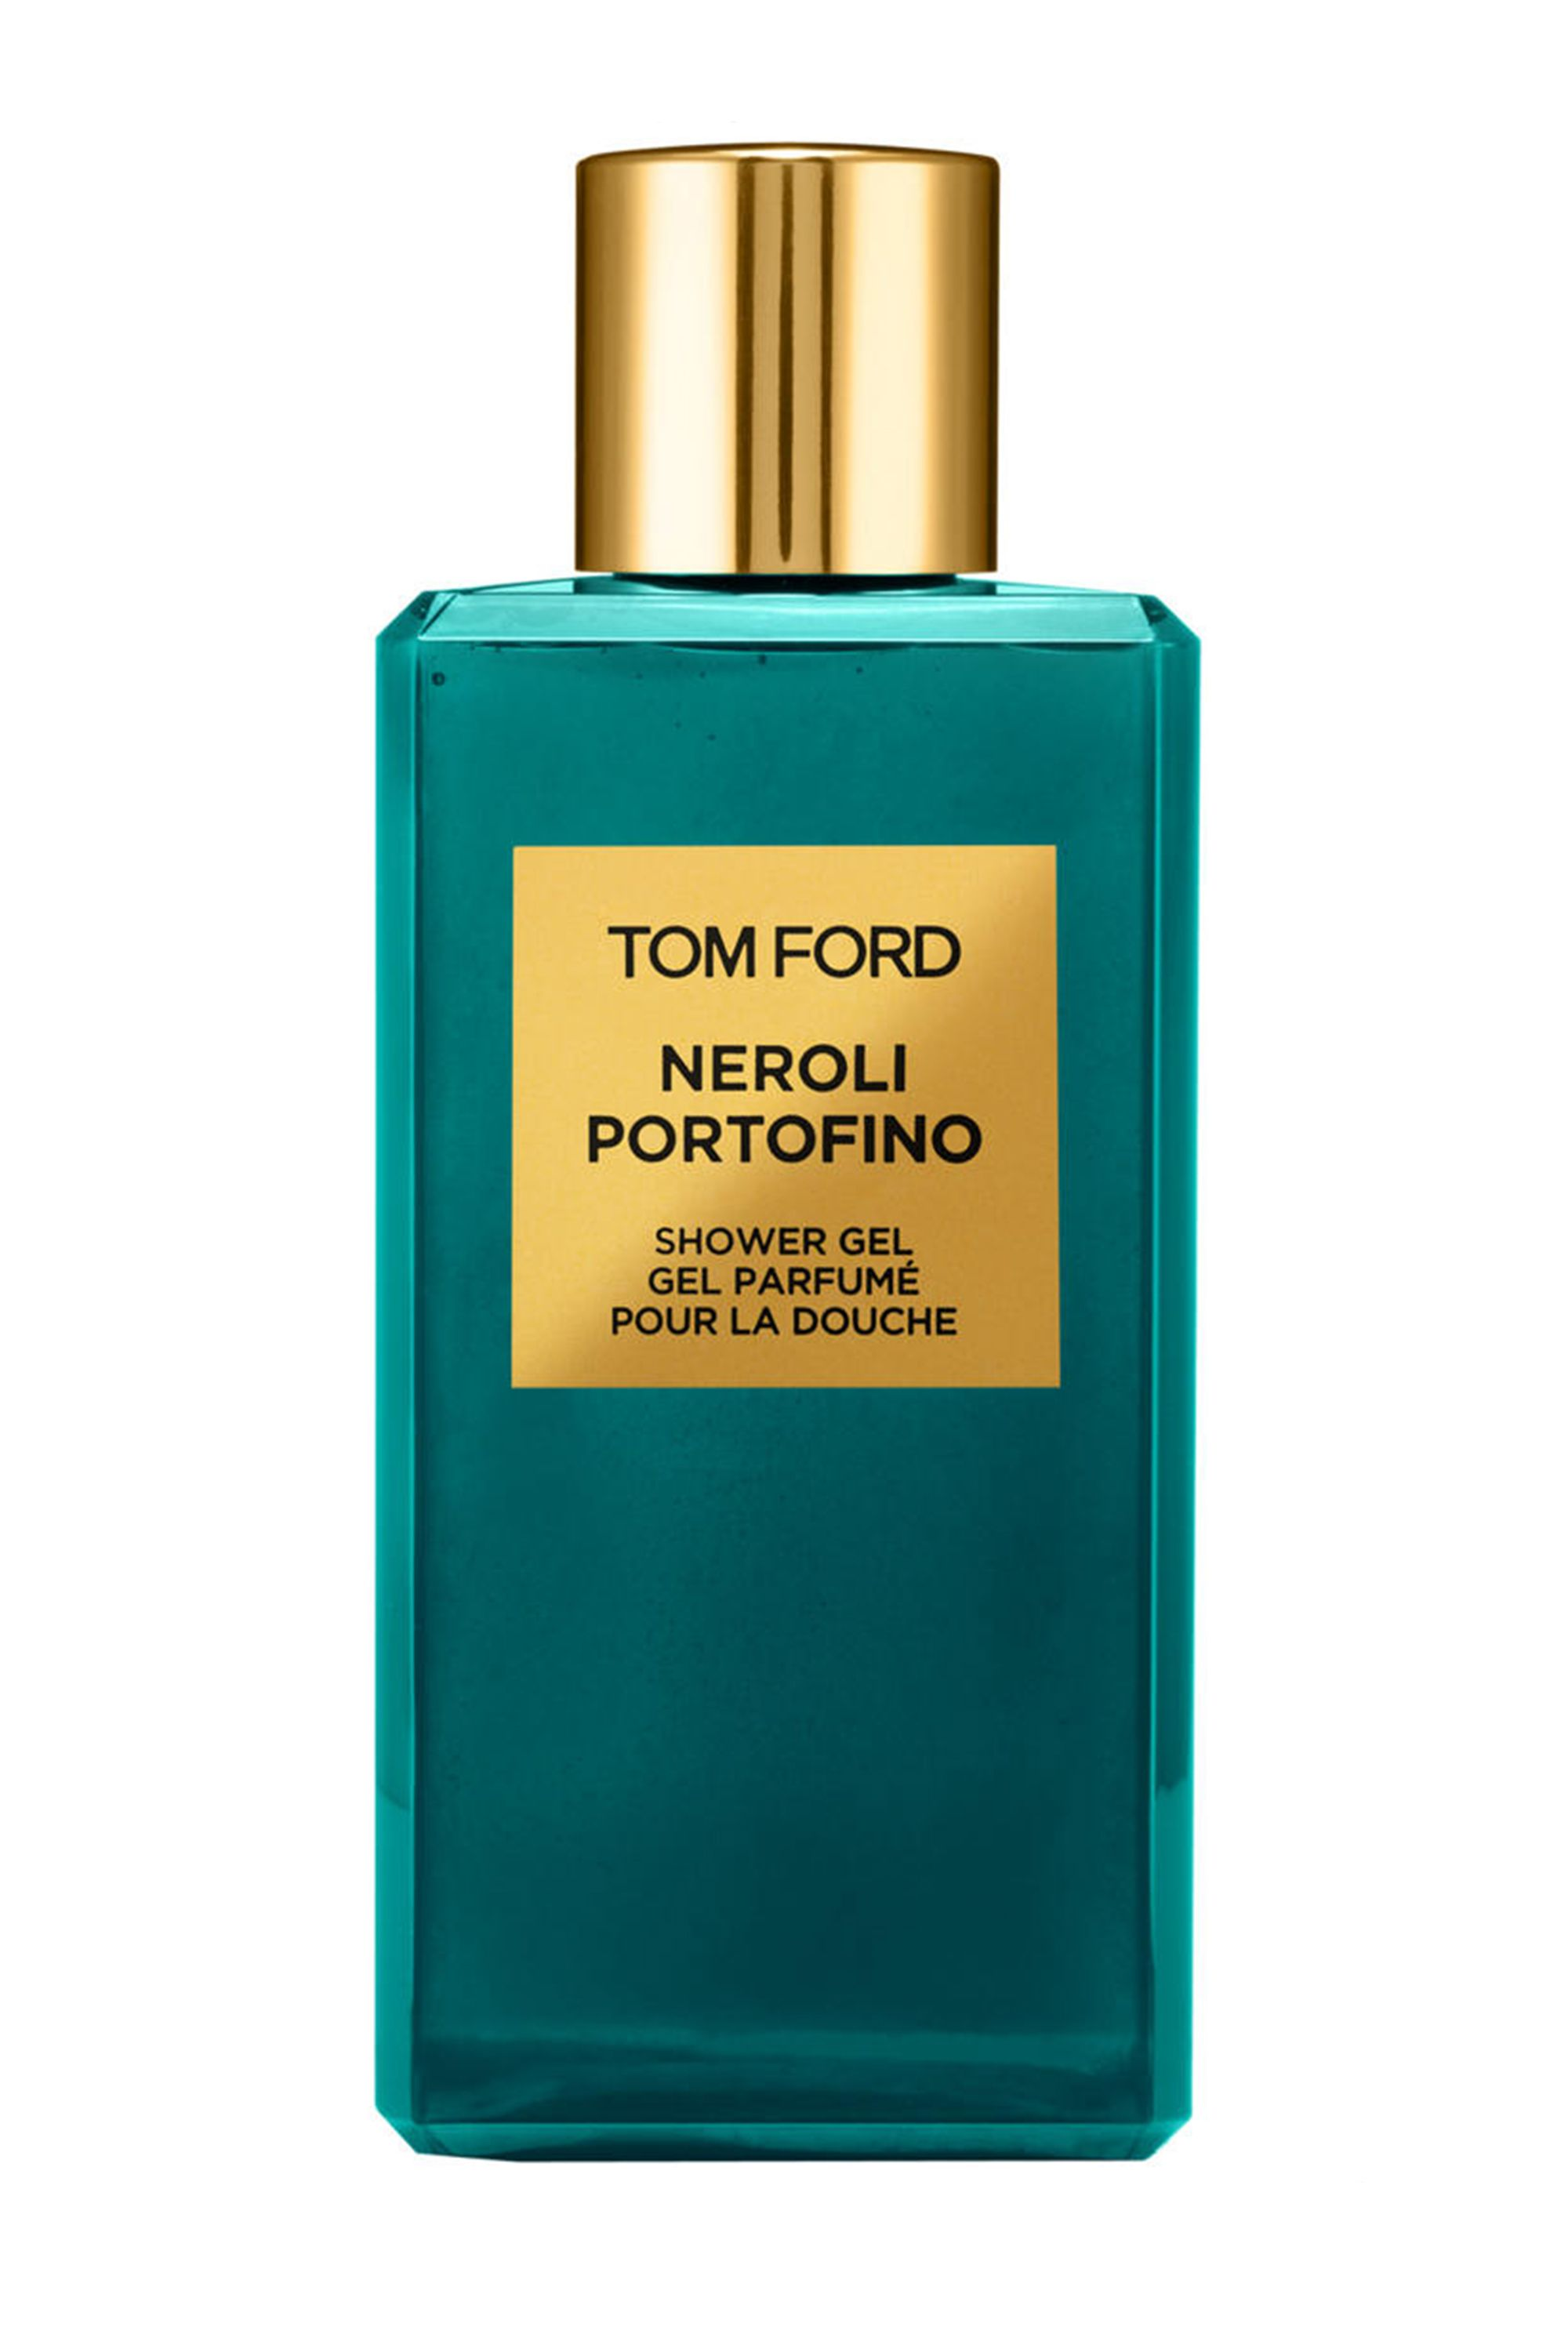 Tom Ford Shower gel - Men's Christmas Gifts